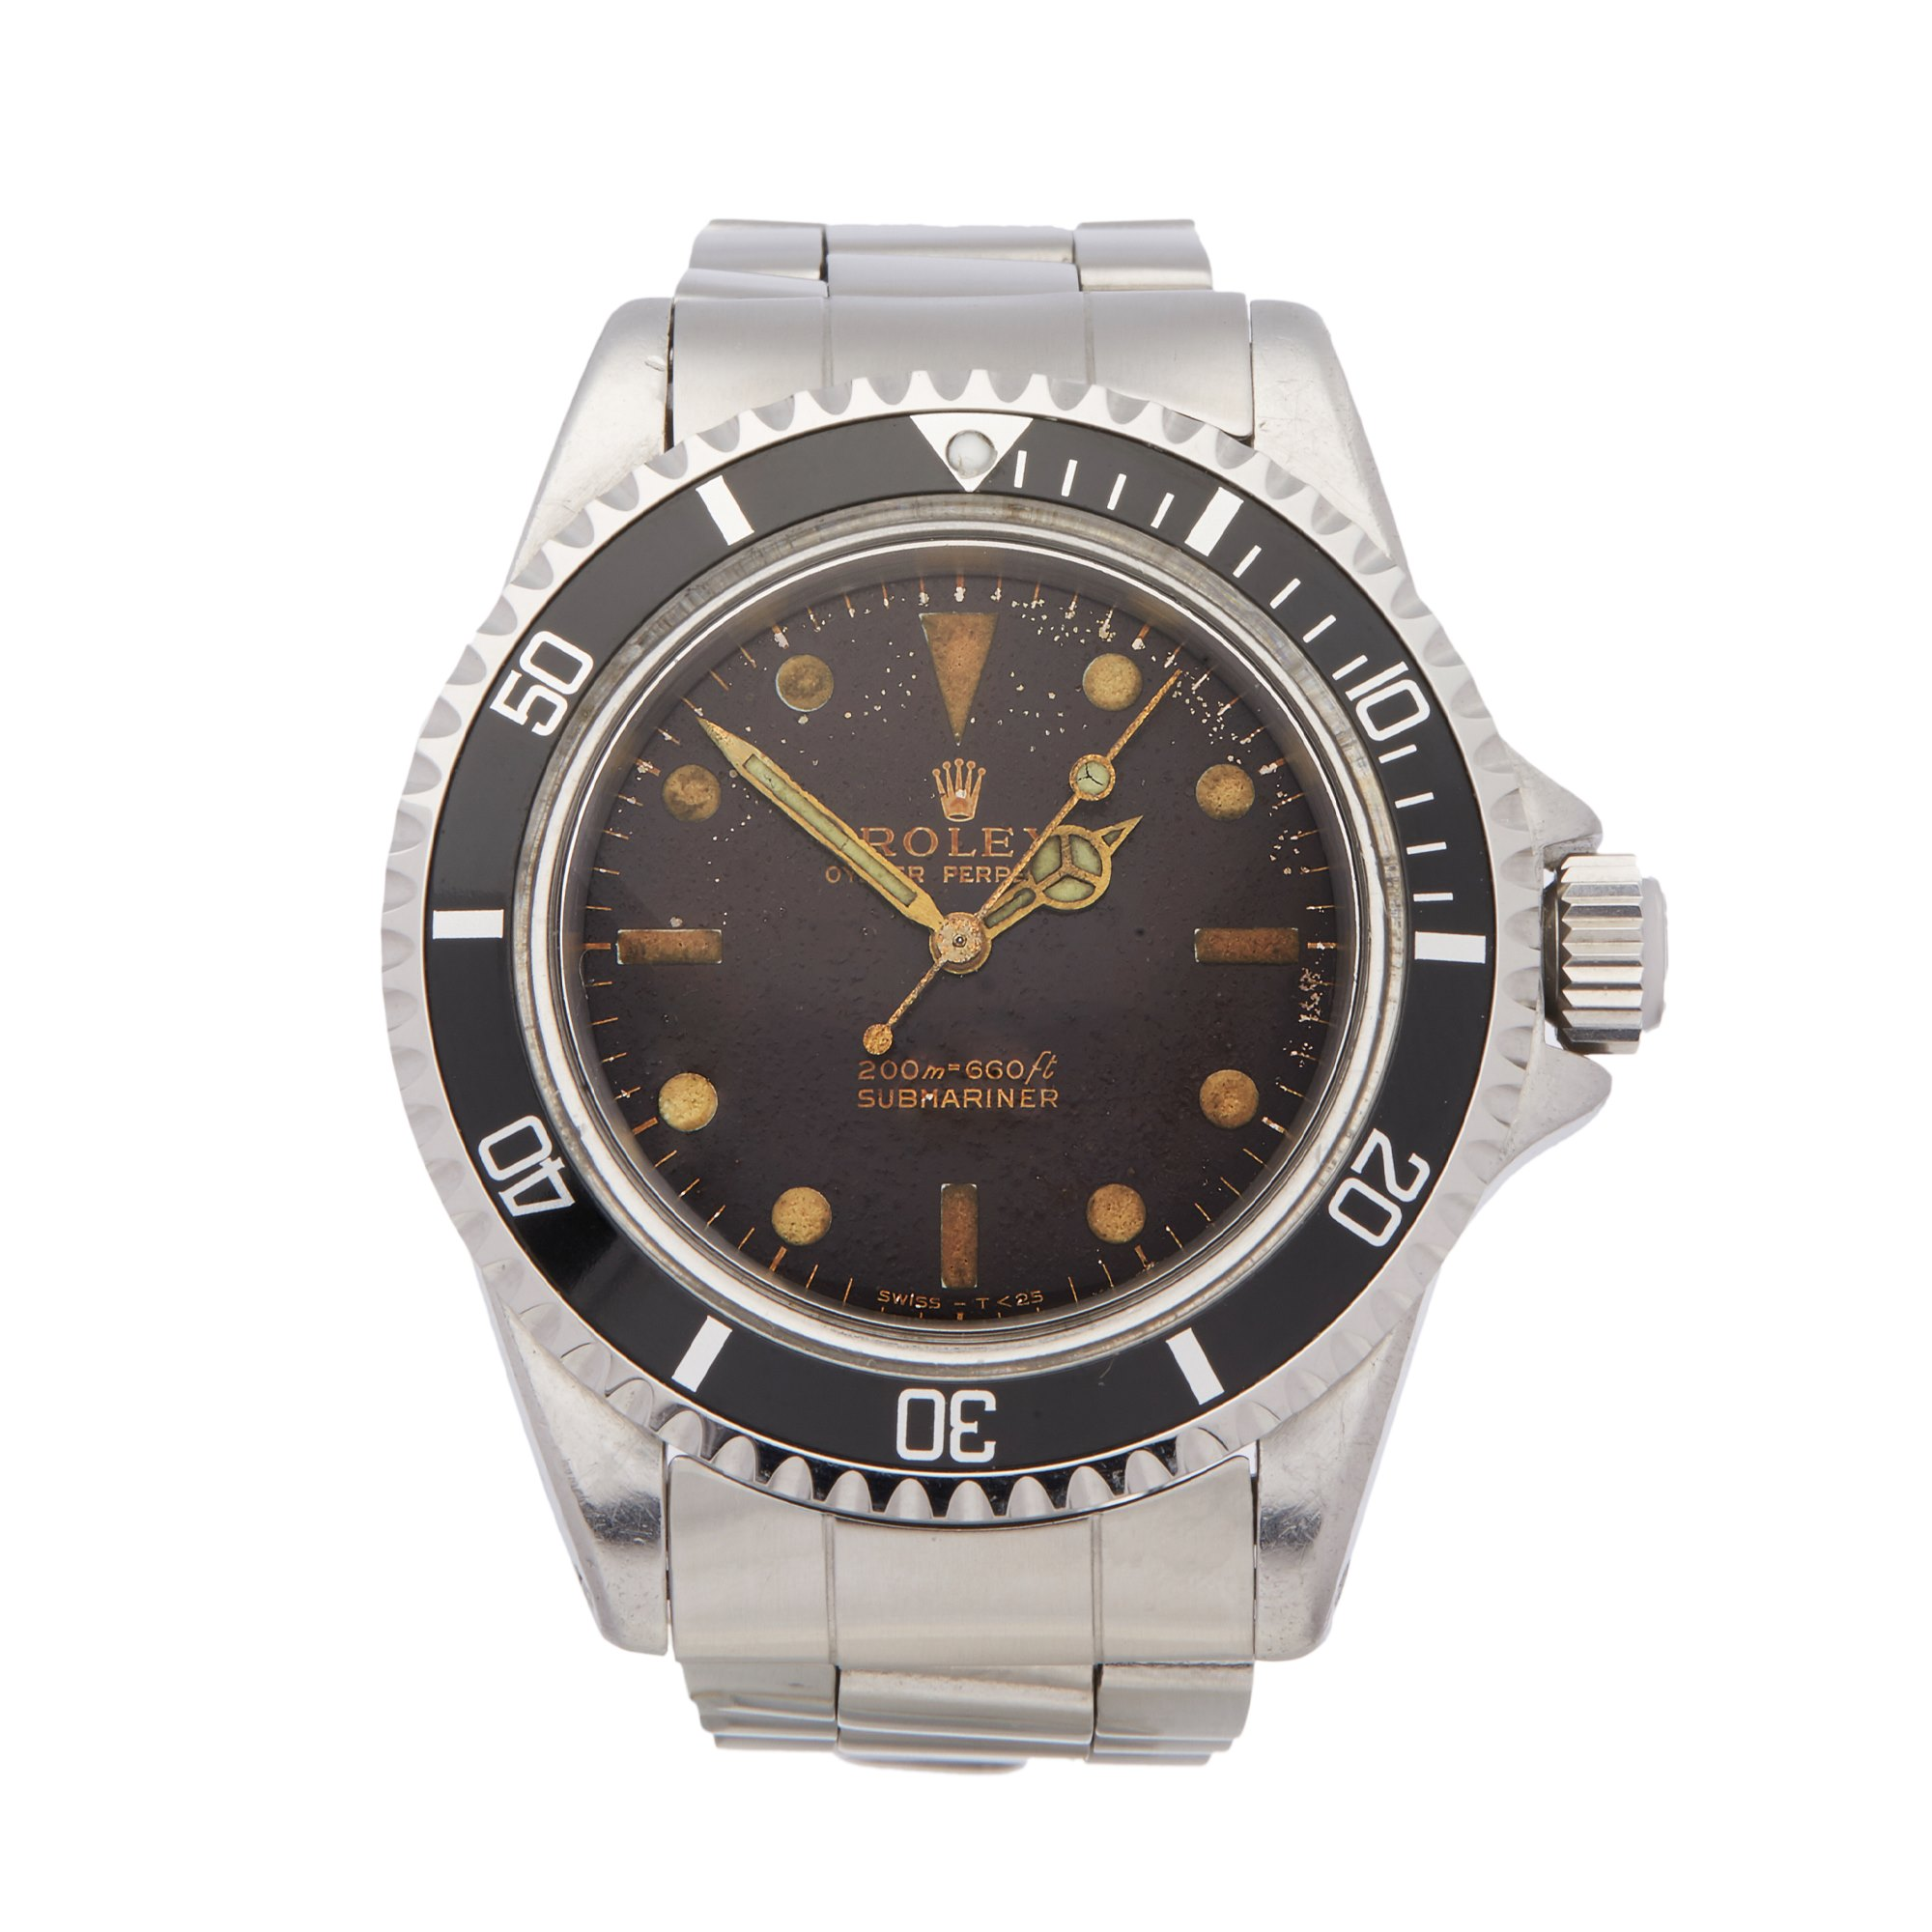 Rolex Submariner No Date Tropical Dial Gilt Gloss Meters First Stainless Steel 5513